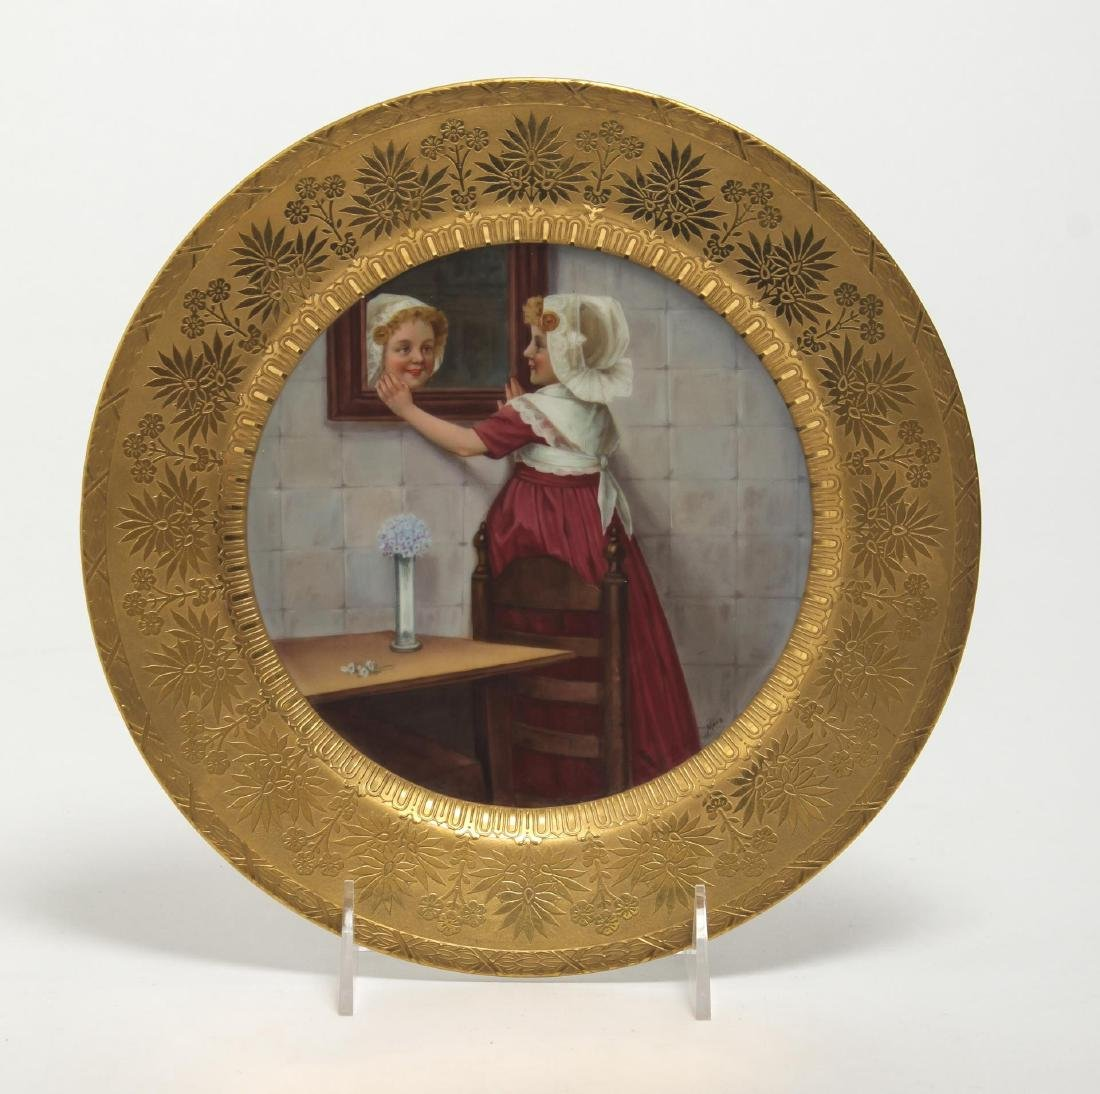 German Porcelain Cabinet Plate Hand-Painted 19th C